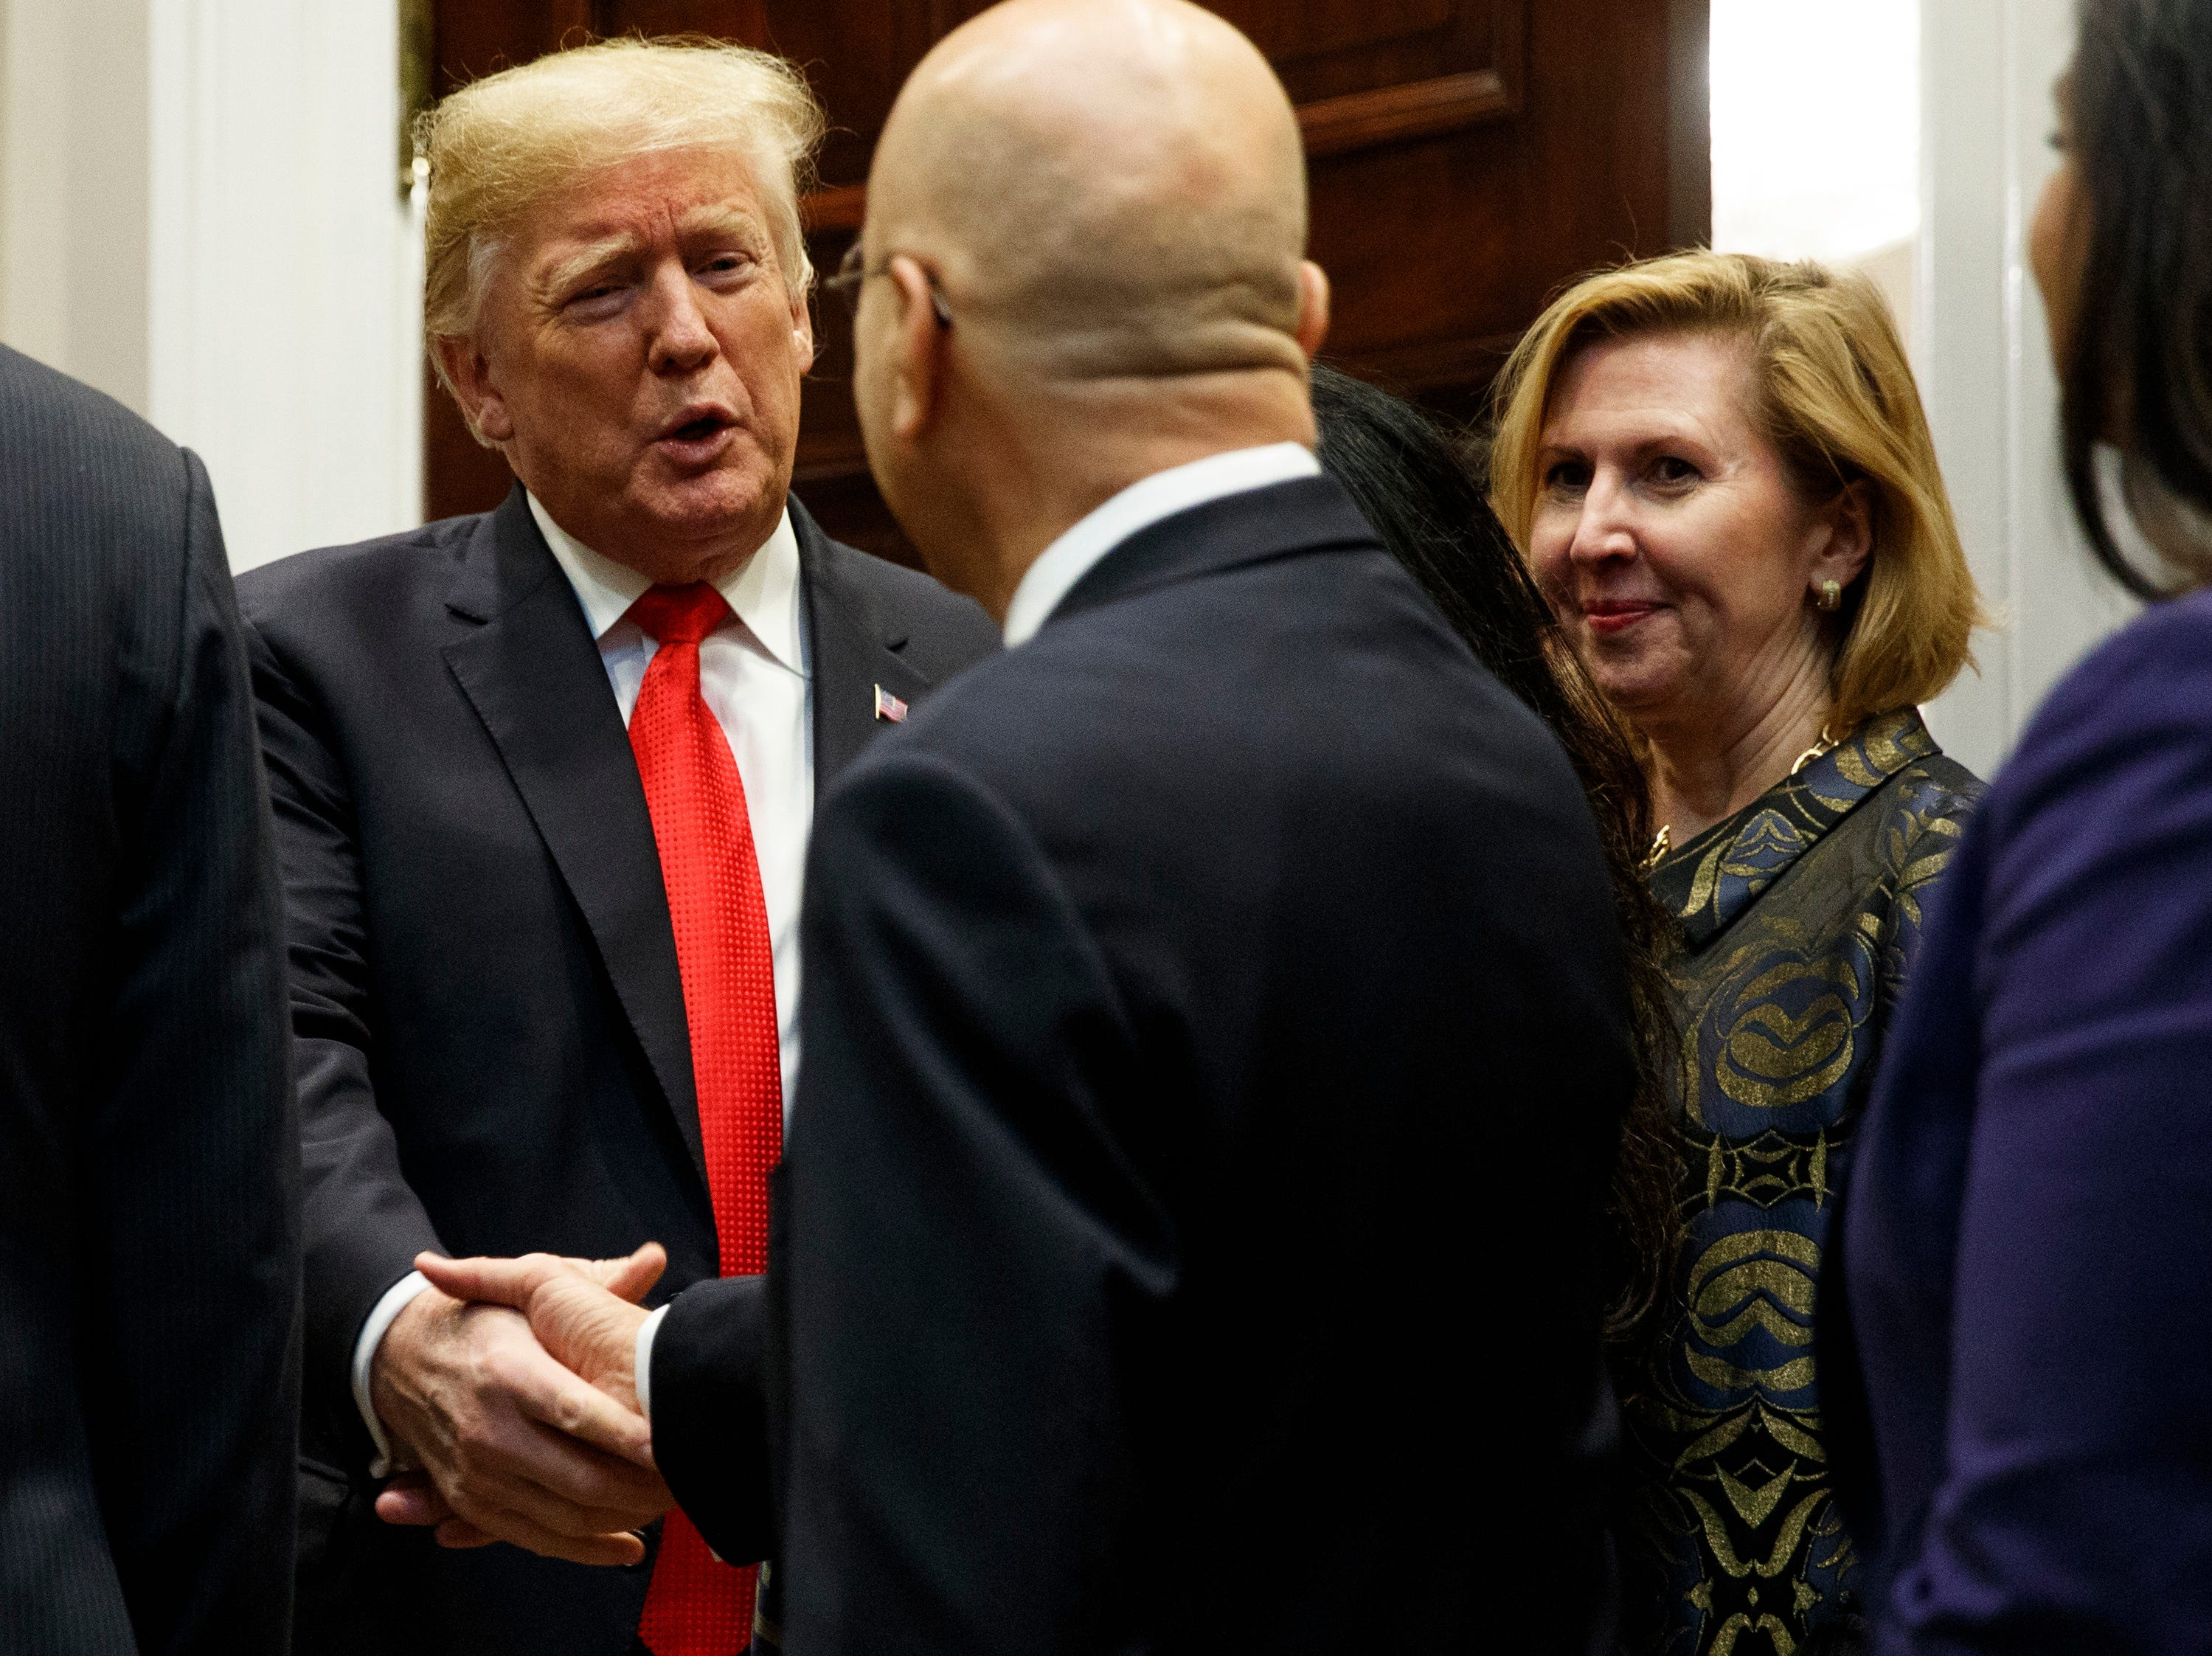 Who is Mira Ricardel? First Lady Melania Trump wants the national security official fired